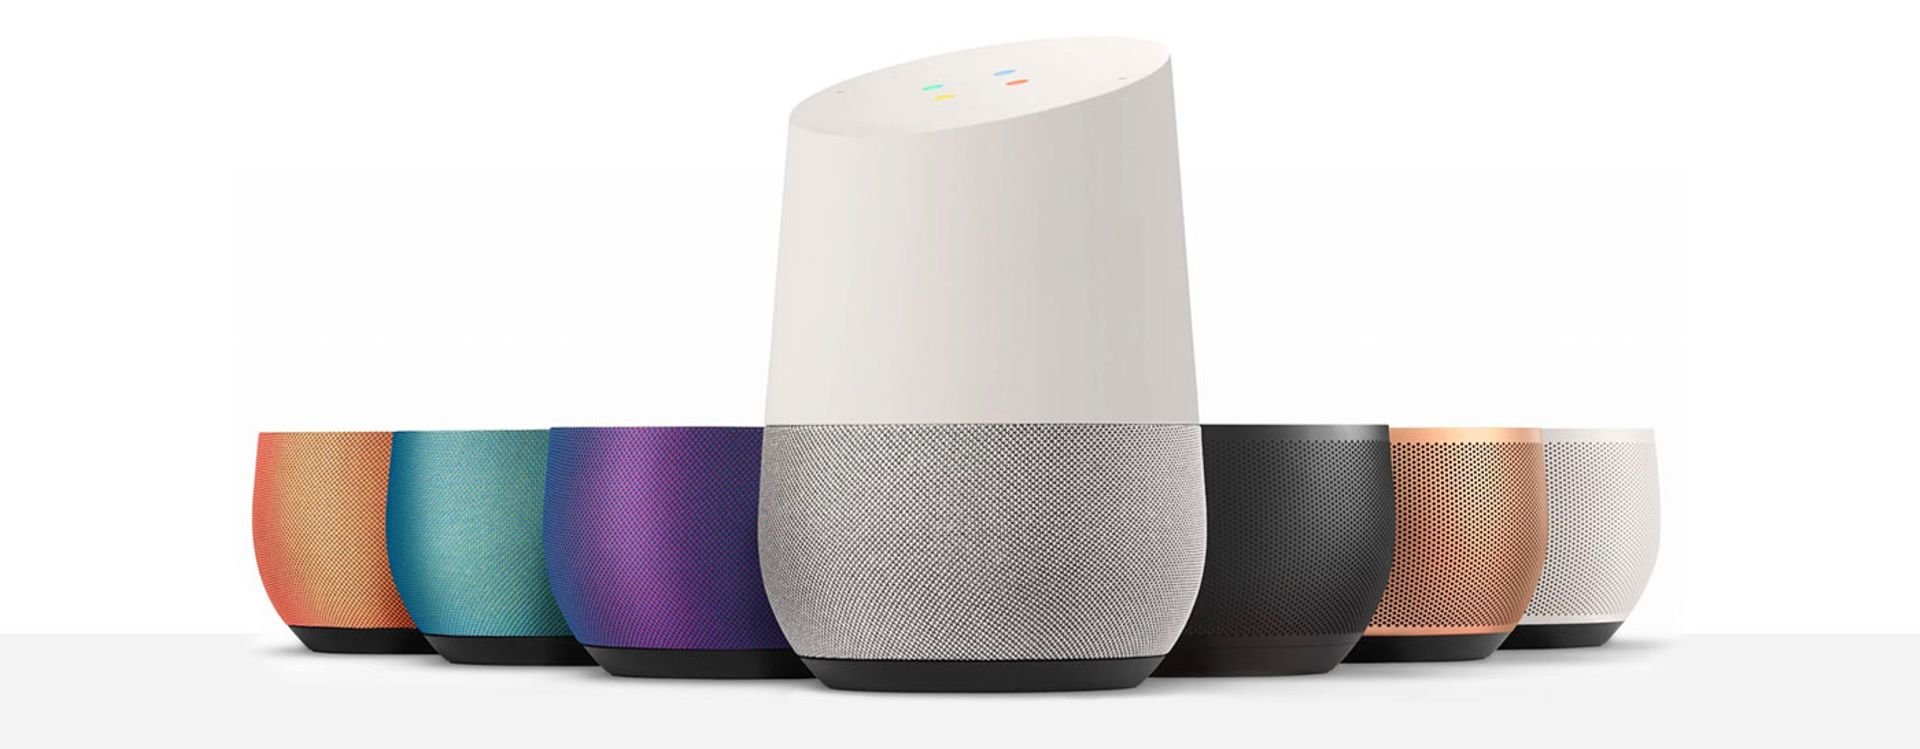 Google Home: a new innovative device working on voice command to assist you at home.